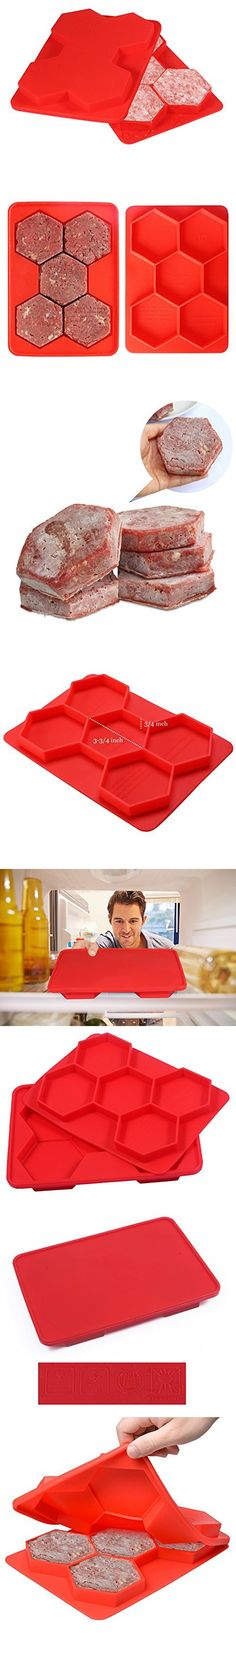 Small Size, Red Non Stick Silicone Frozen Hamburger Maker Mould 7-in-1 Burger Press Cutlets Mould Maker Kitchen Tools for Hamburger Patty Maker Breakfast Sandwich Maker